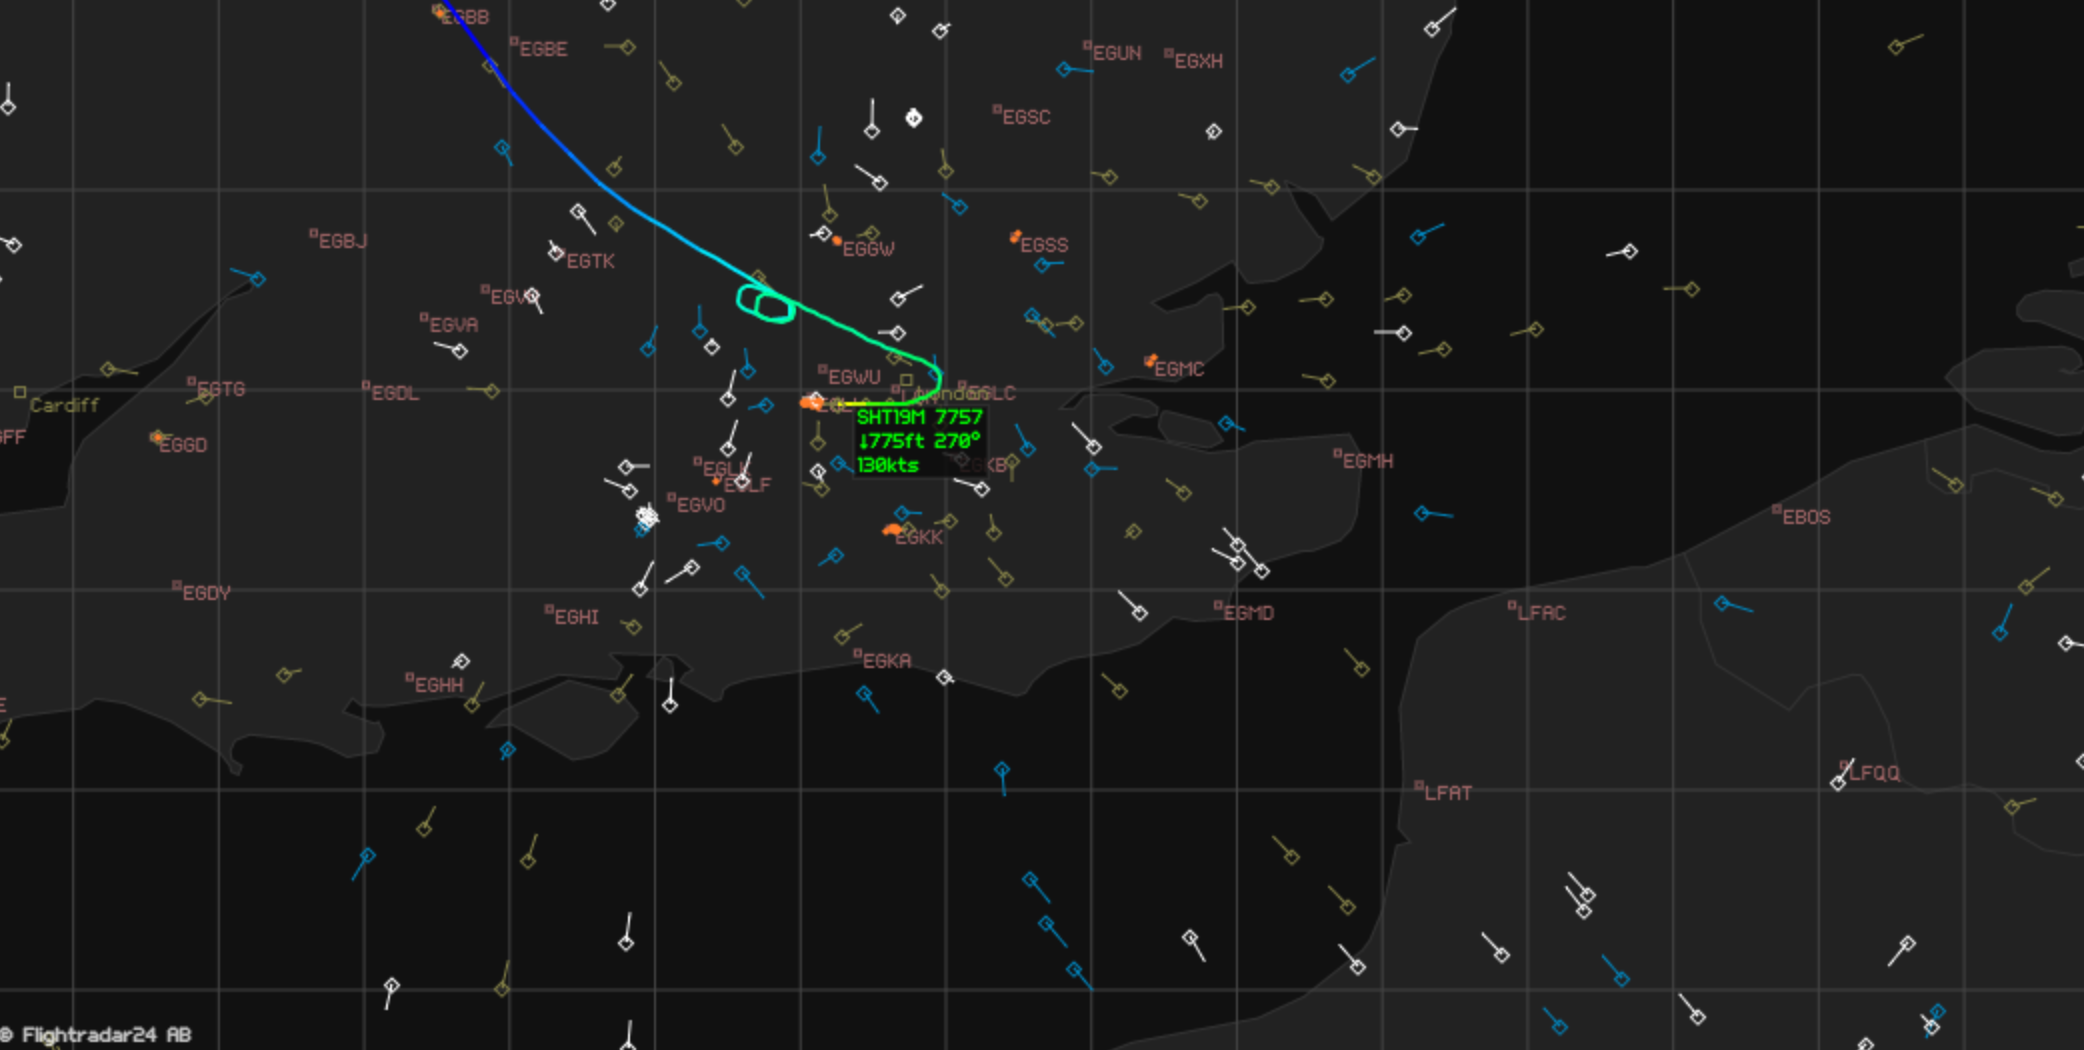 A screen shot from FlightRadar24 Premium shows planes in the sky over London. The green line represents the plane whose path we followed.